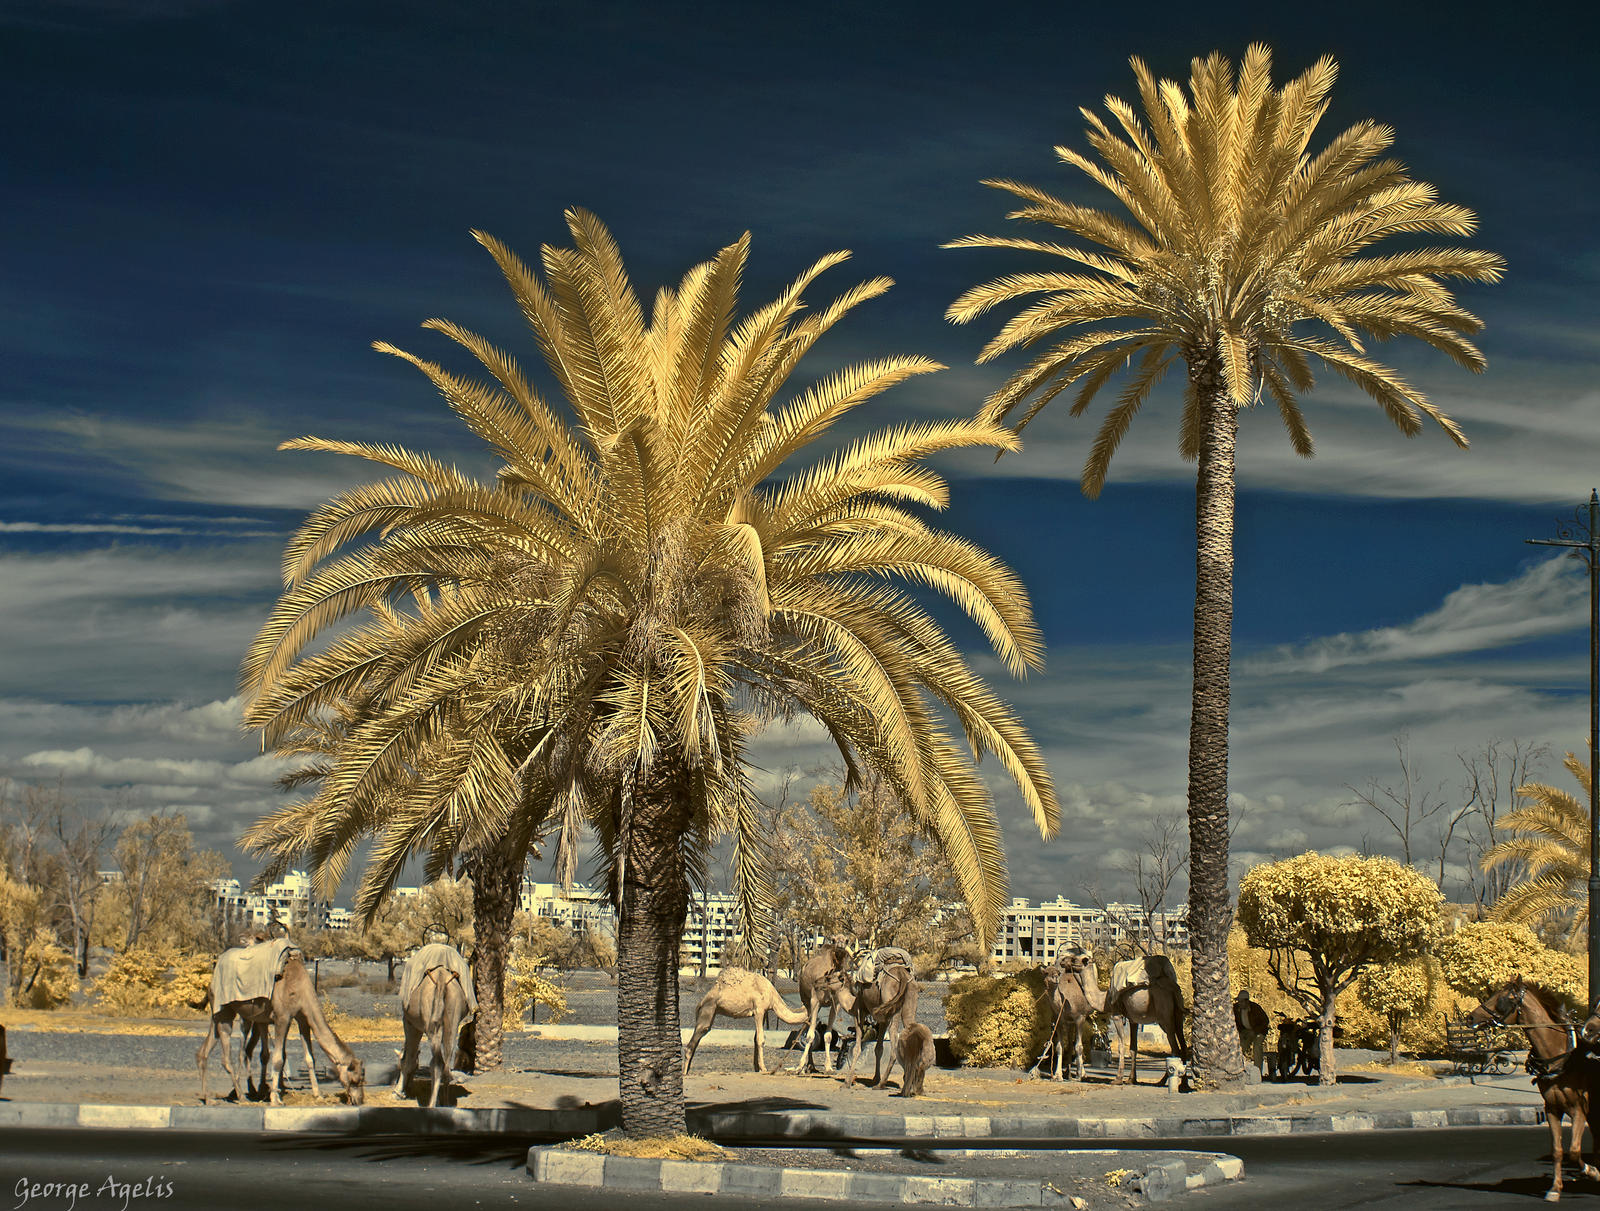 Palms and Camels by agelisgeo